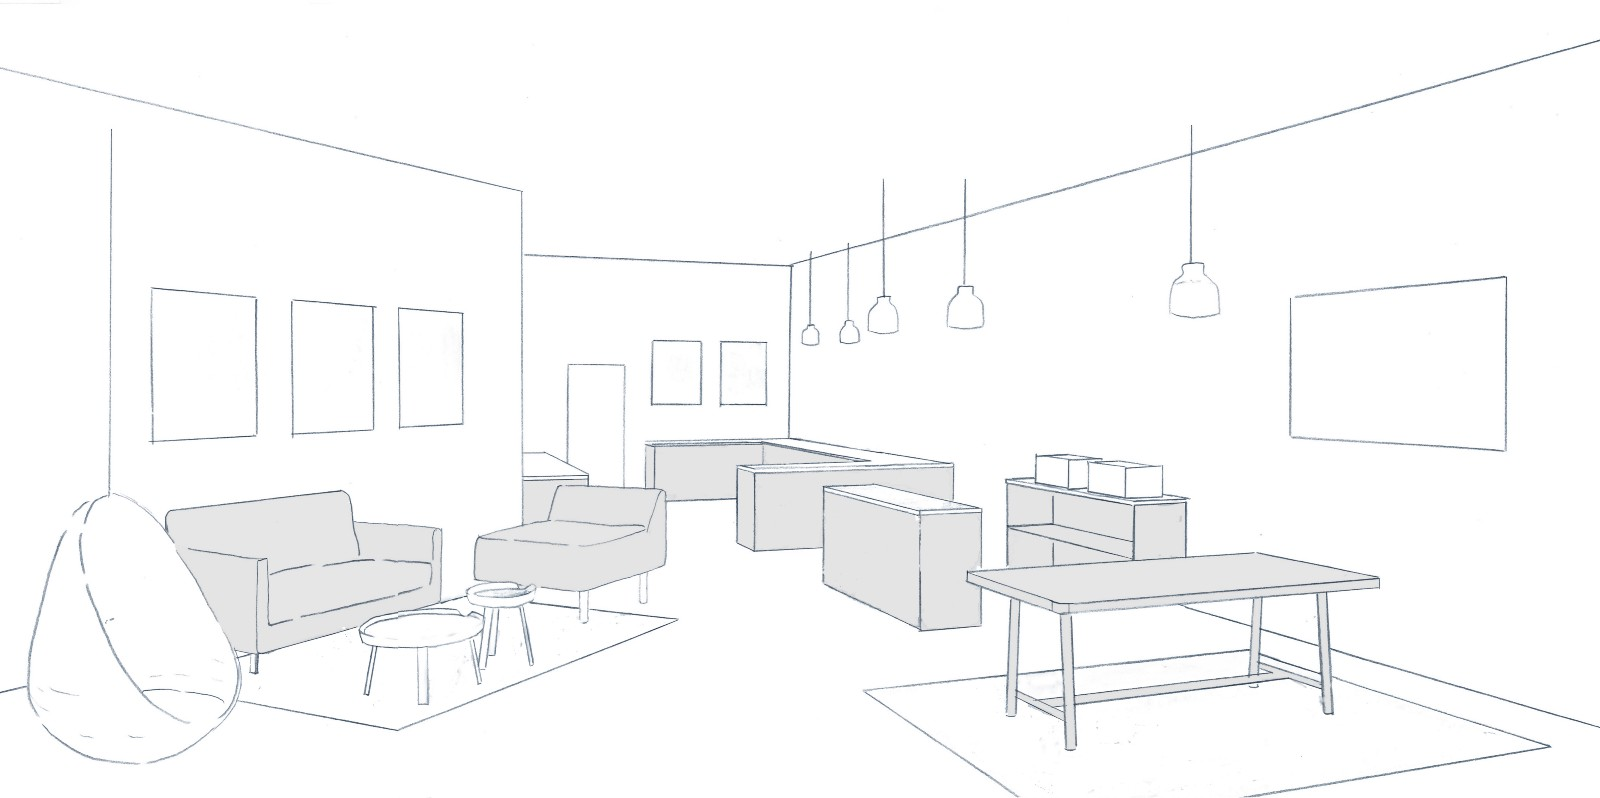 June Pop Up Showroom Design Concept Sketch, By Hobstetter Architecture  Studio